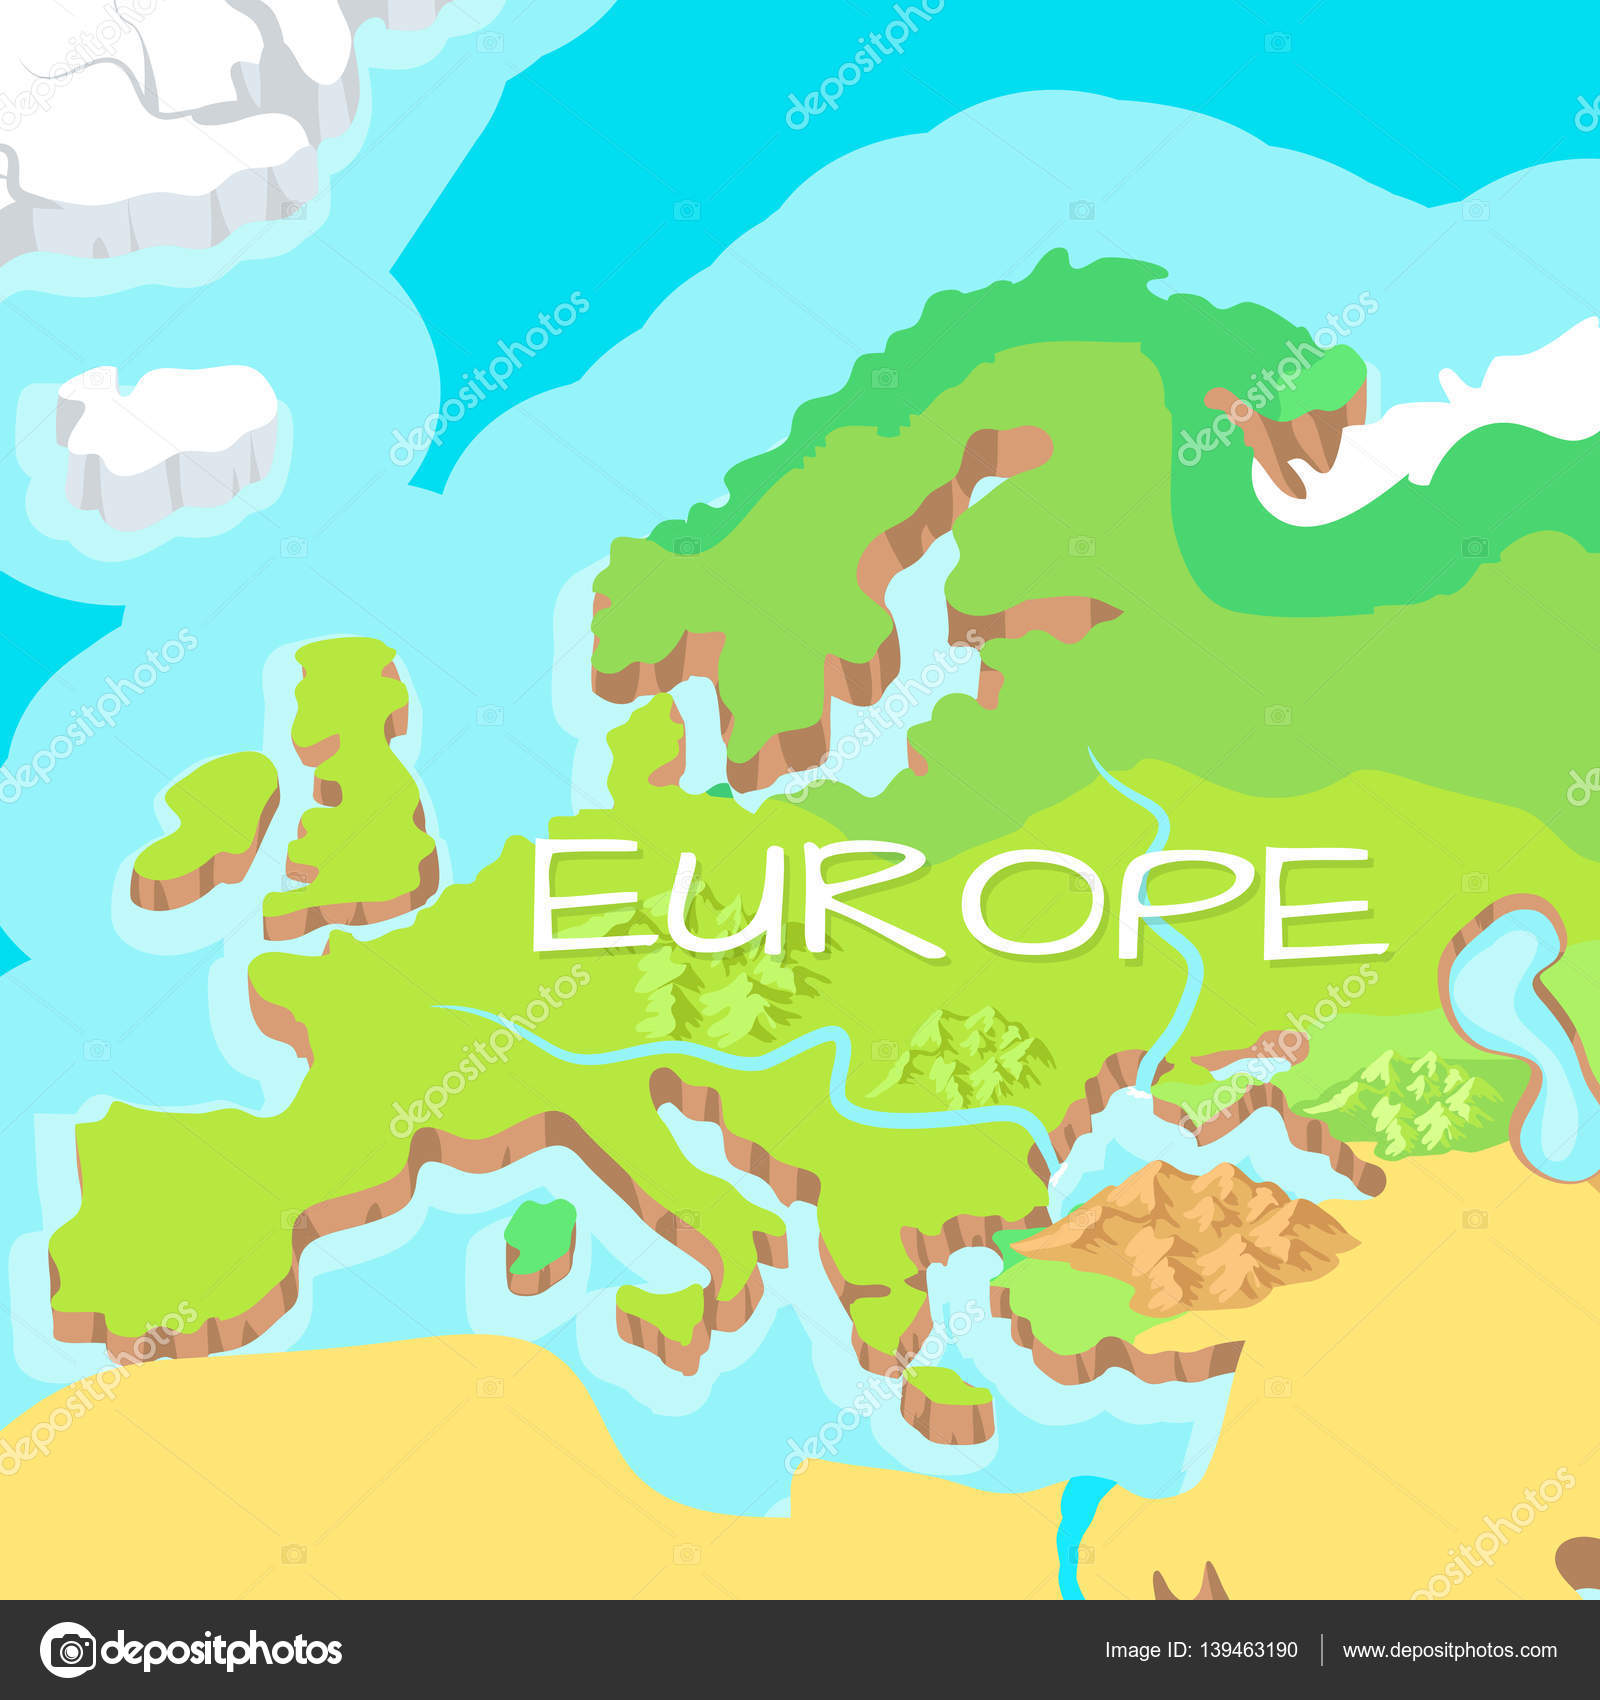 Mainland Europe Map.Europe Mainland Vector Cartoon Relief Map Stock Vector C Robuart